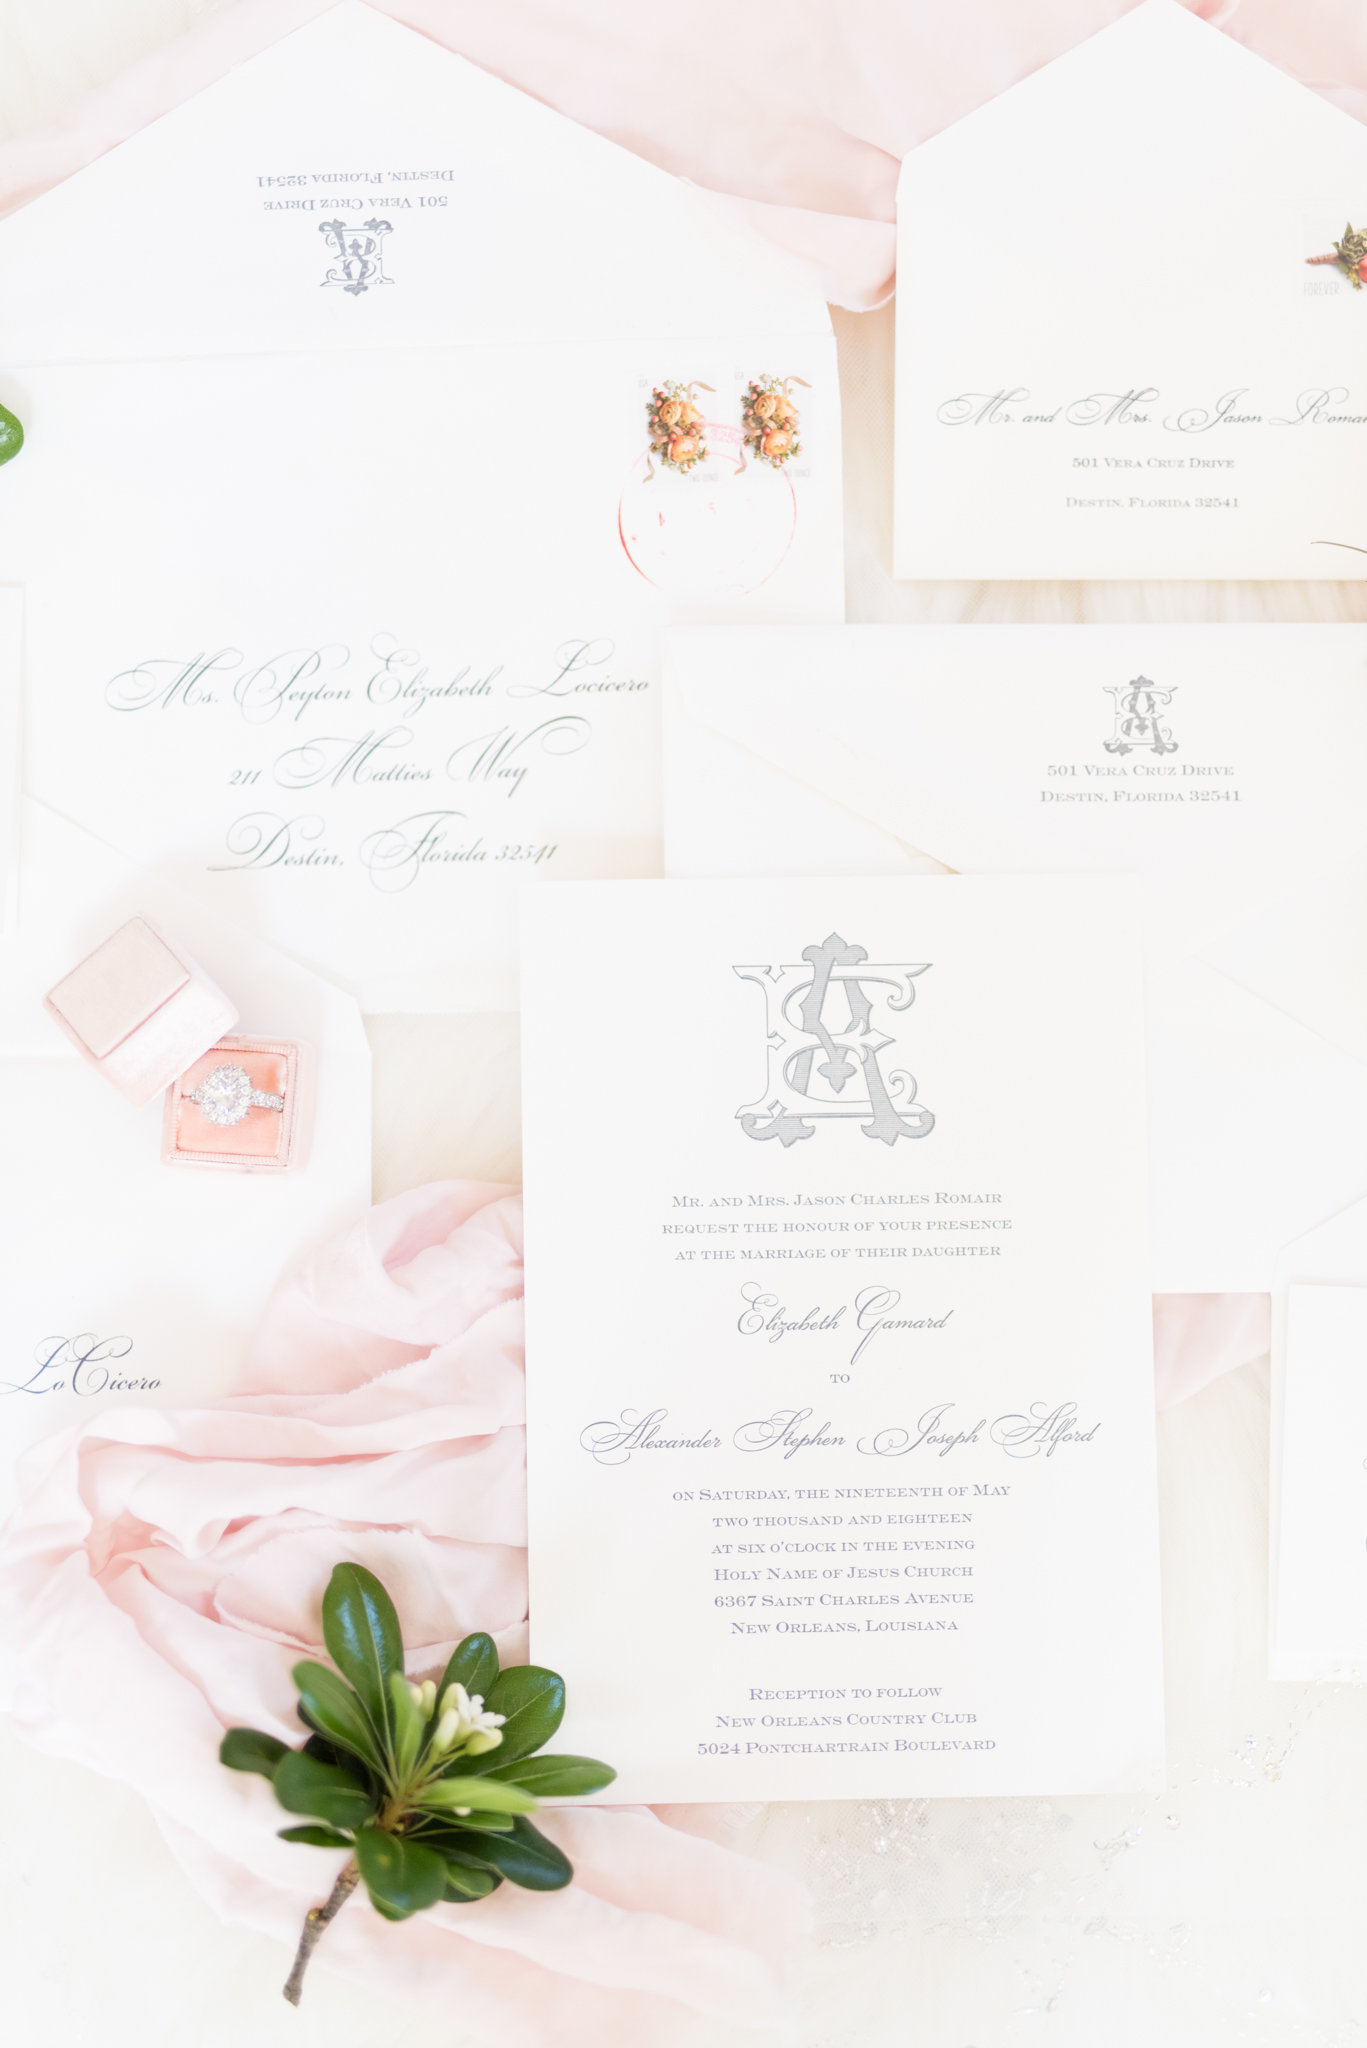 Black and White invitation suite.